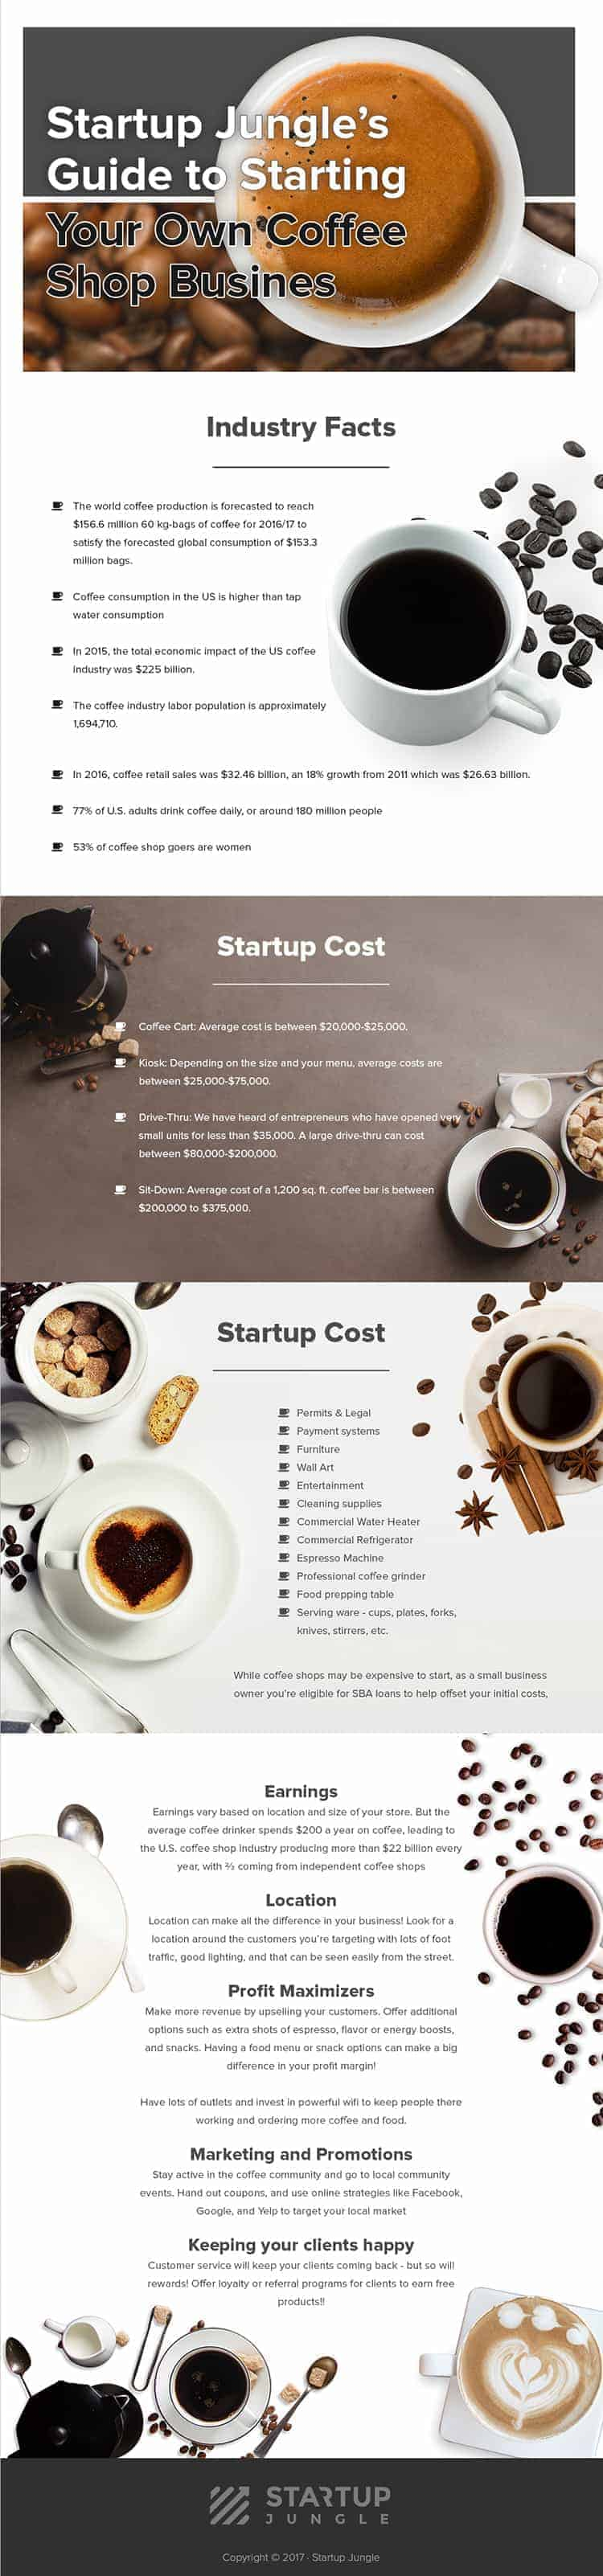 starting coffee store online infographic